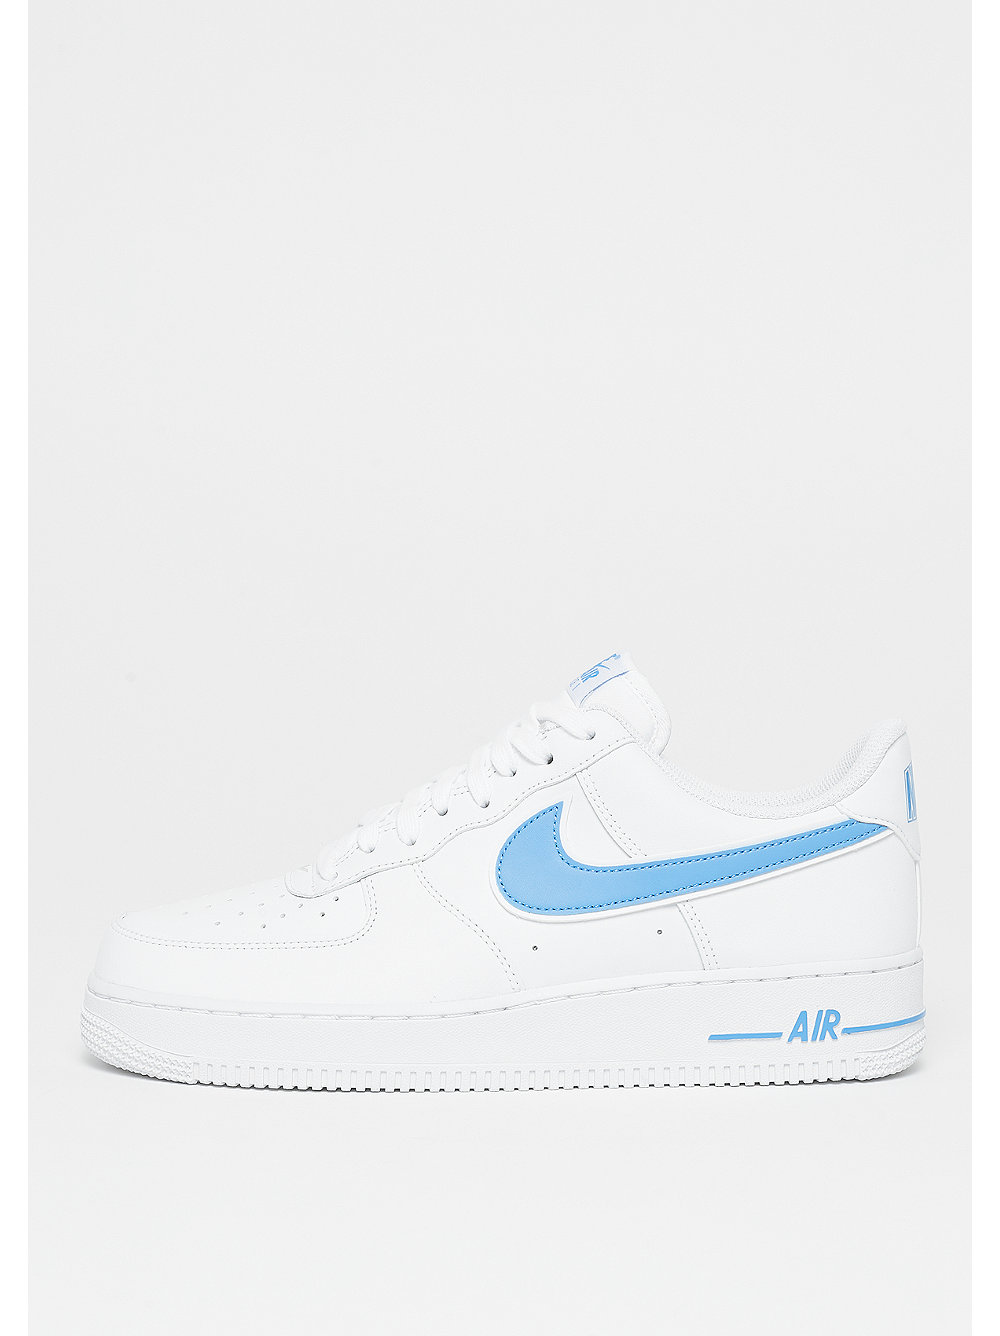 Nike Air Force 1 '07 white/university blue